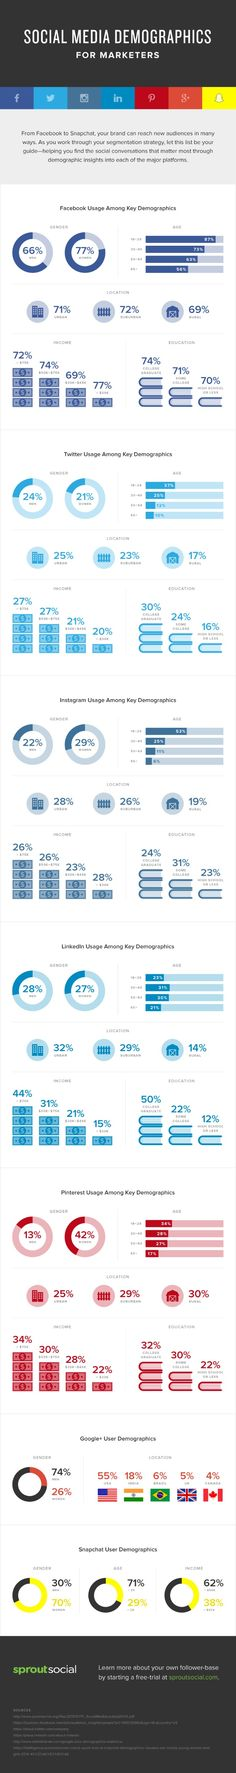 How Marketers Should Choose Social Networks (Infographic) | via @borntobesocial